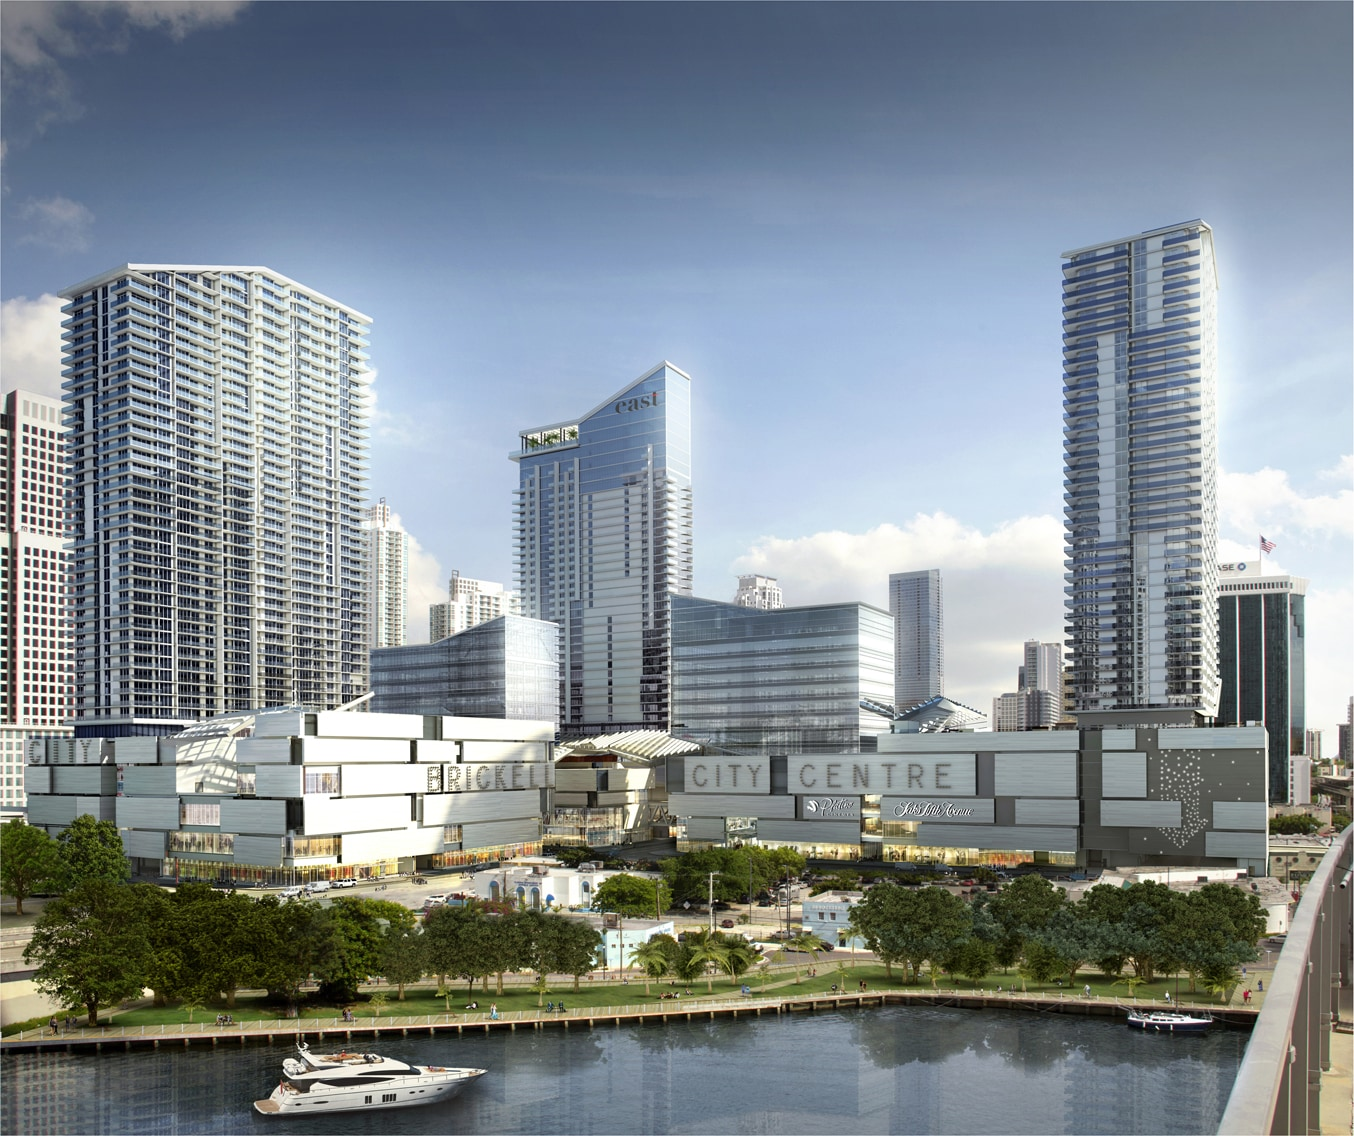 brickell city centre, swire properties